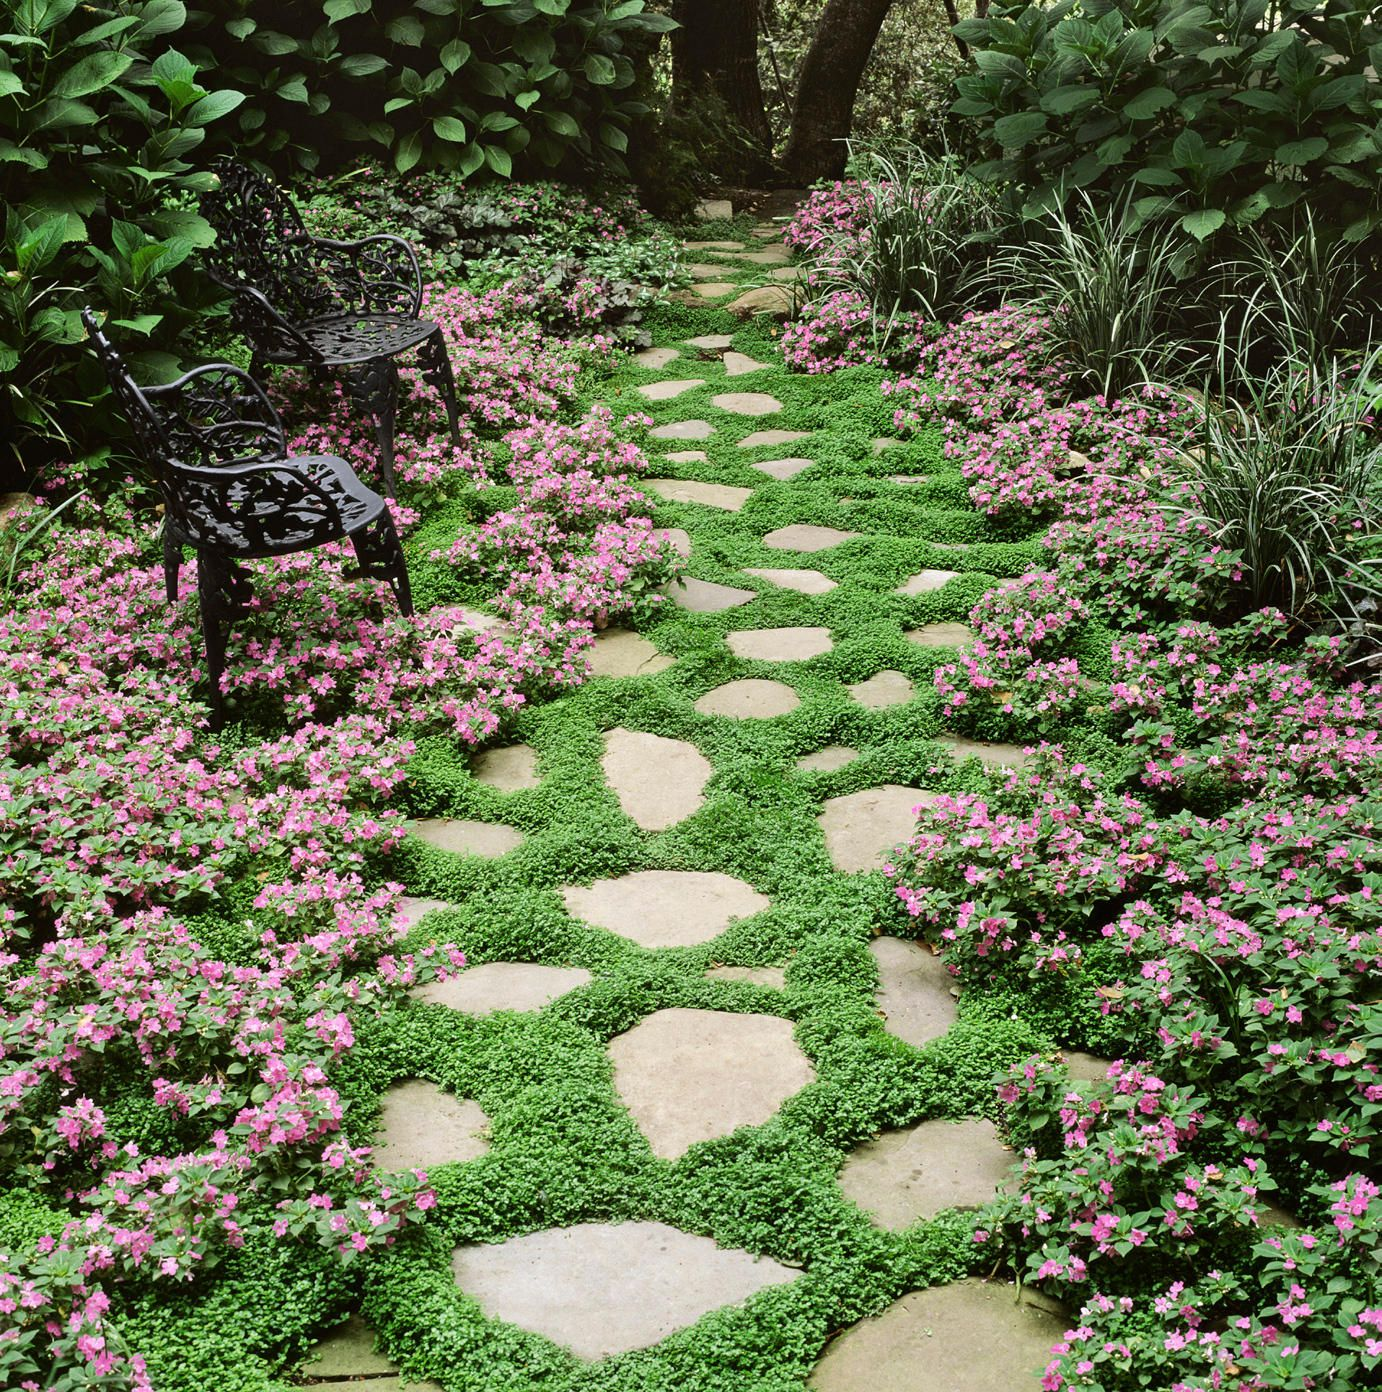 & 52 Best Front Yard and Backyard Landscaping Ideas - Landscaping Designs